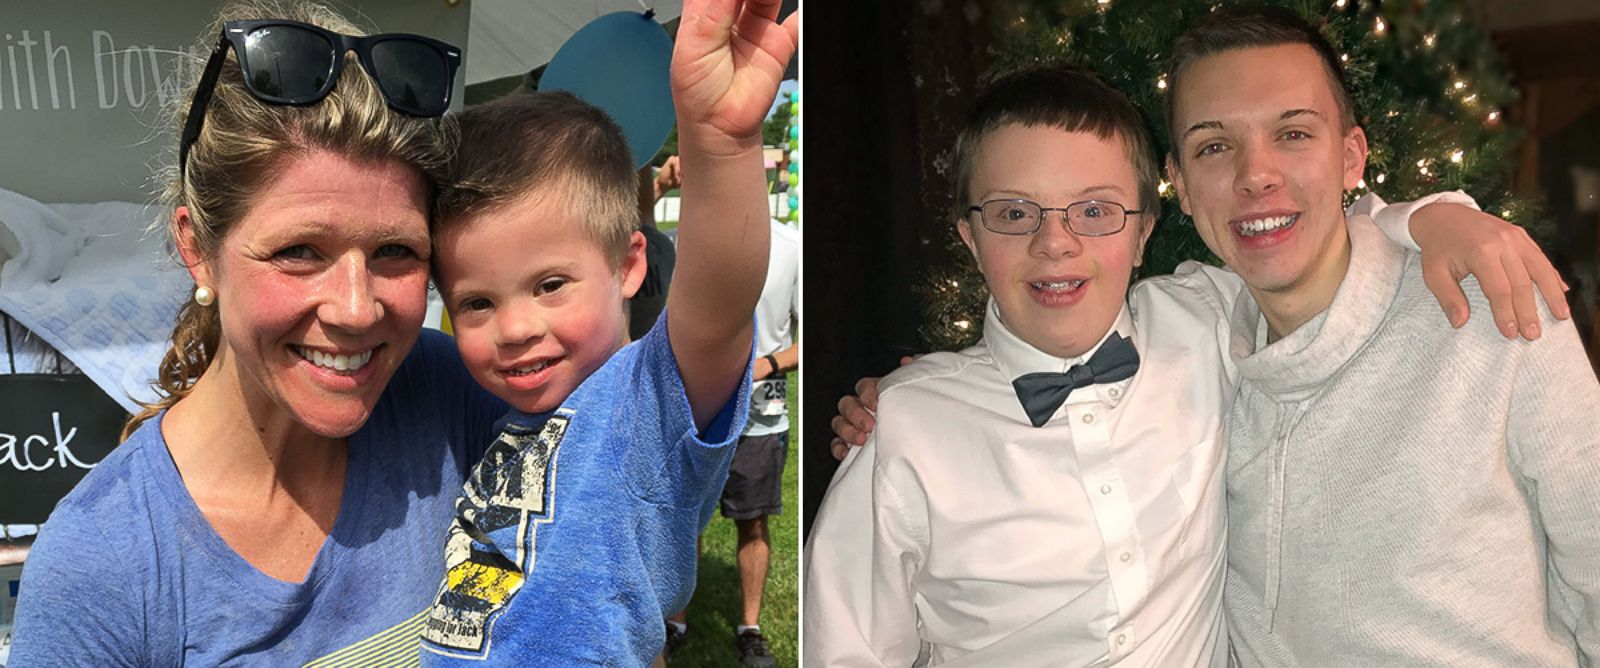 PHOTO: Carissa Carroll, left, of Shoreview, Minnesota, photographed with her son Jack and seen right, Jordan Witt, 18 of Little Falls, Minnesota, pictured with his brother, Logan Witt, 14, in an undated photos.